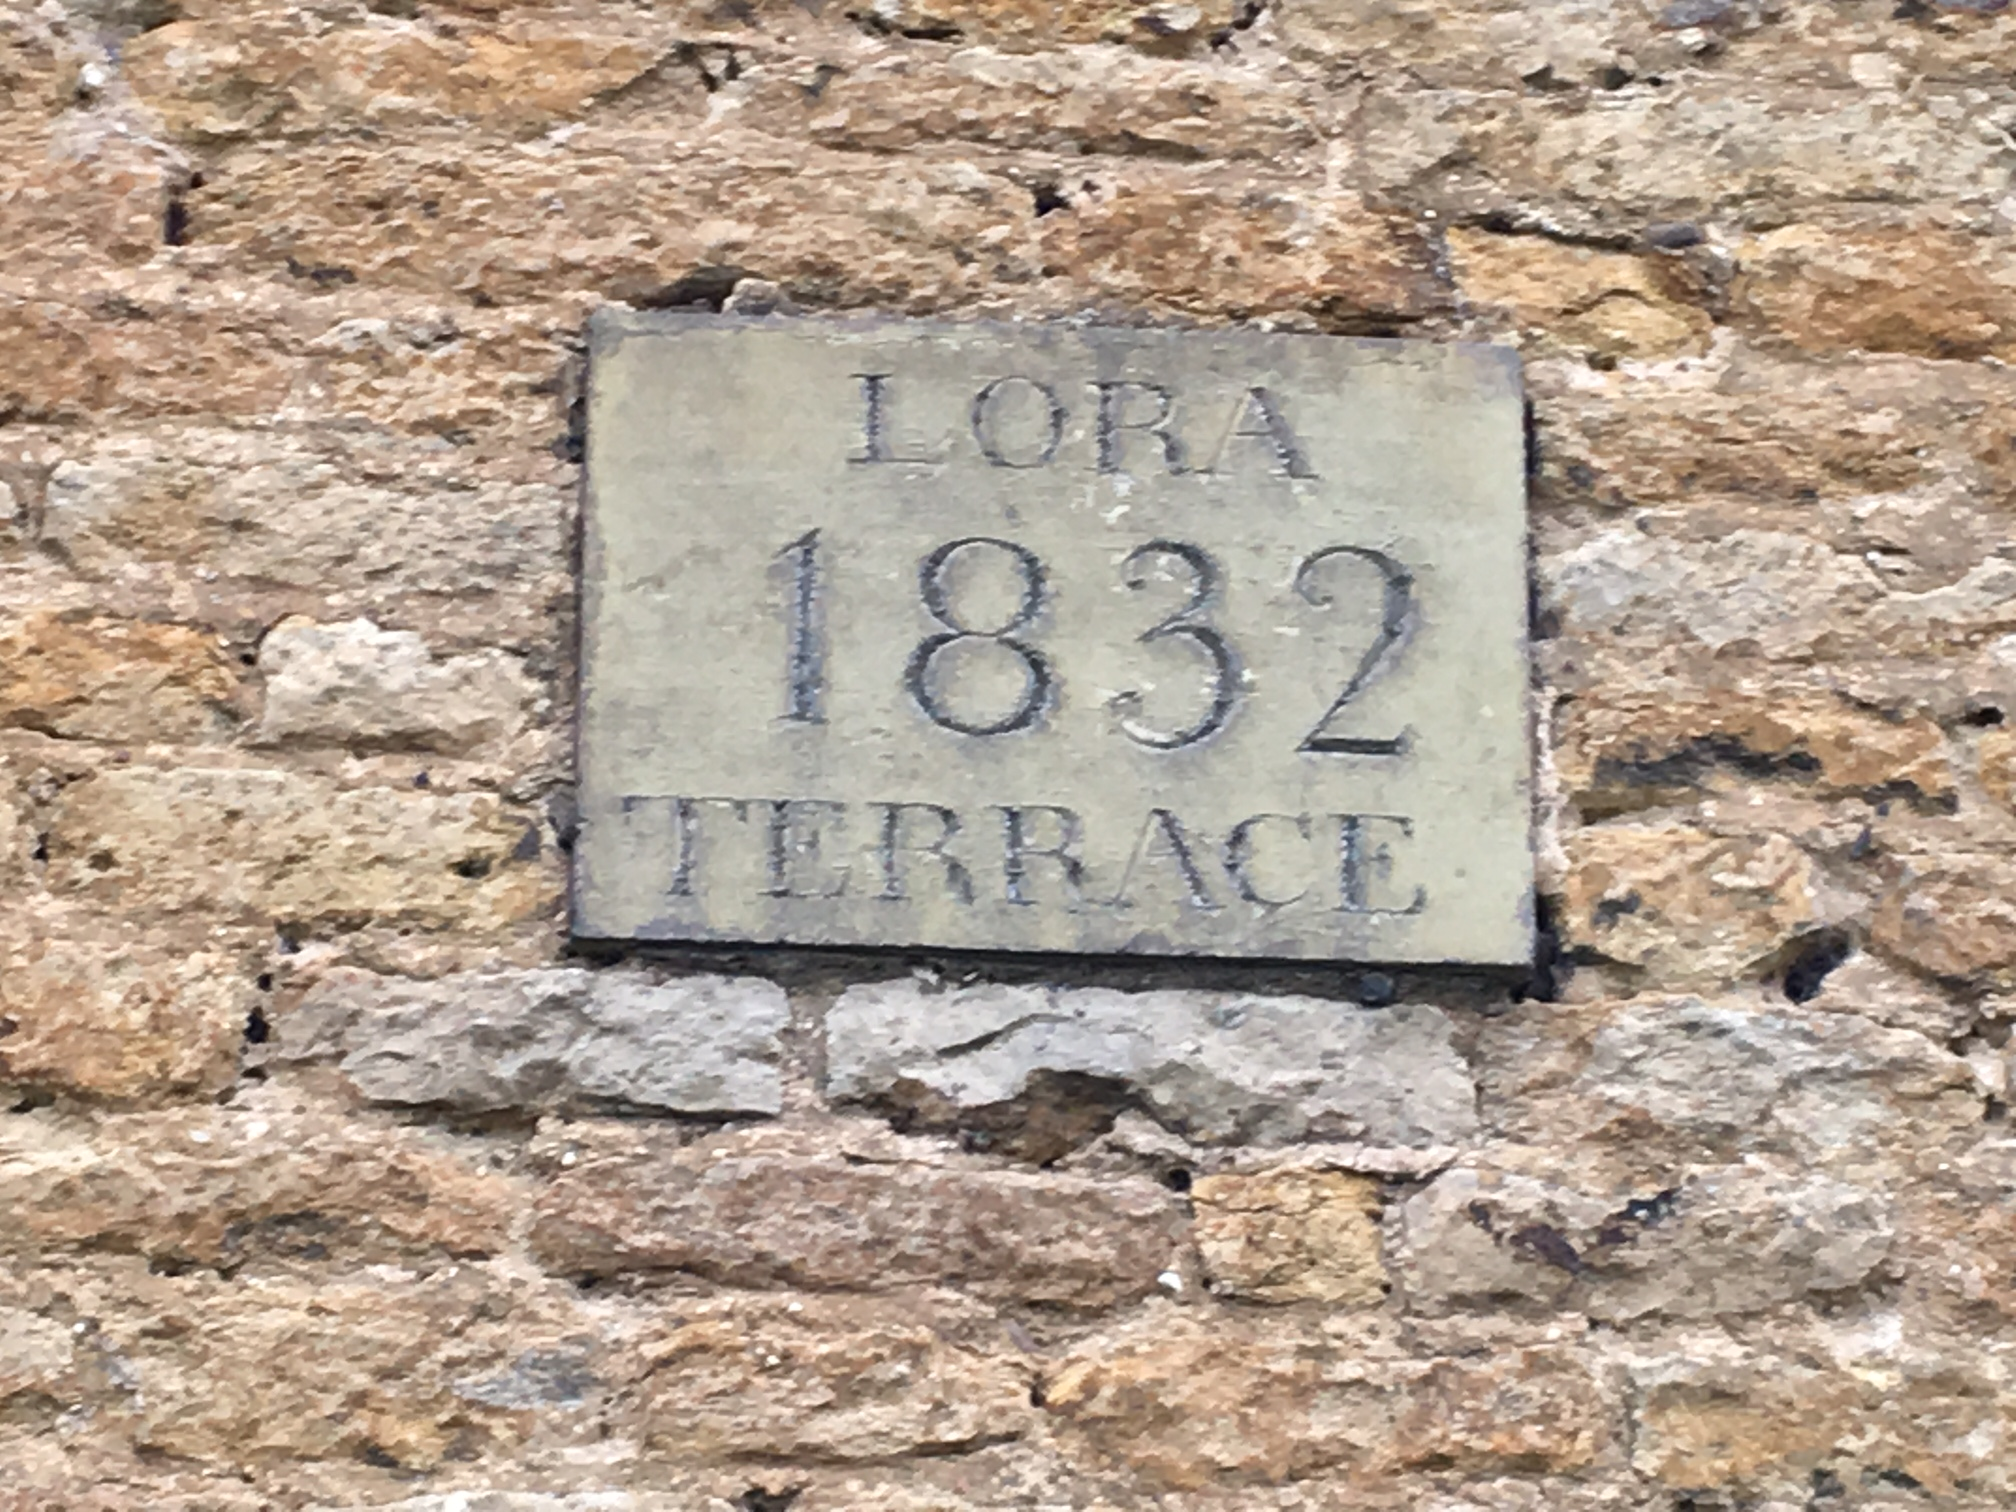 Lora Terrace sign